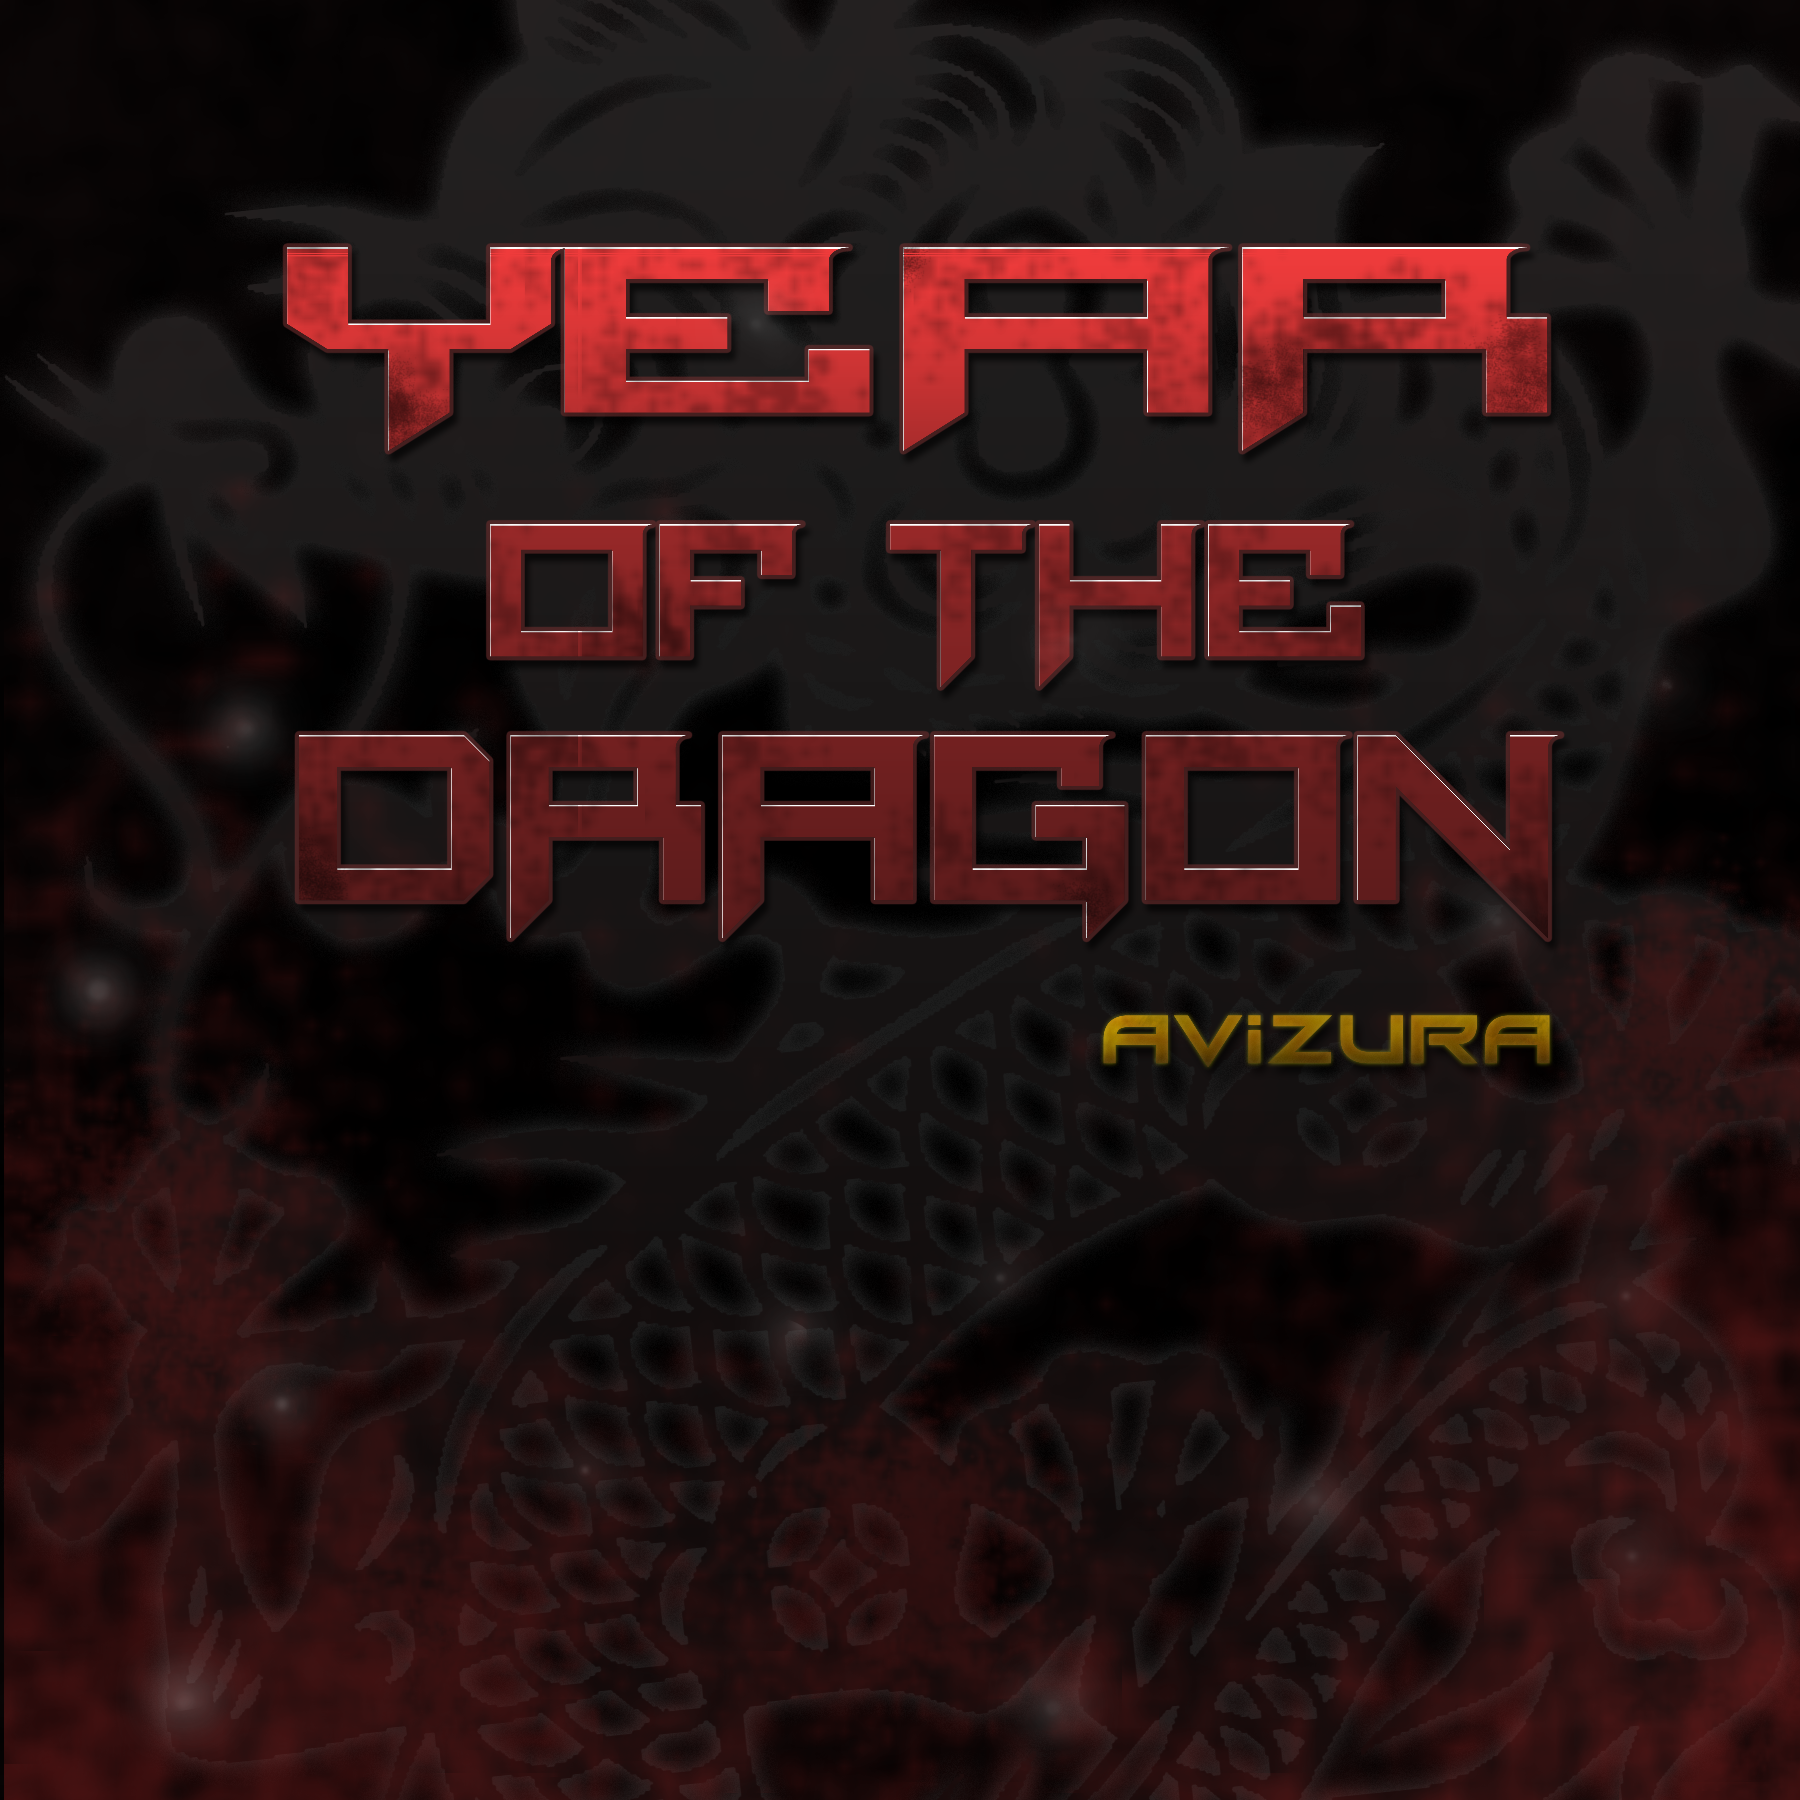 -=Year Of The Dragon=-